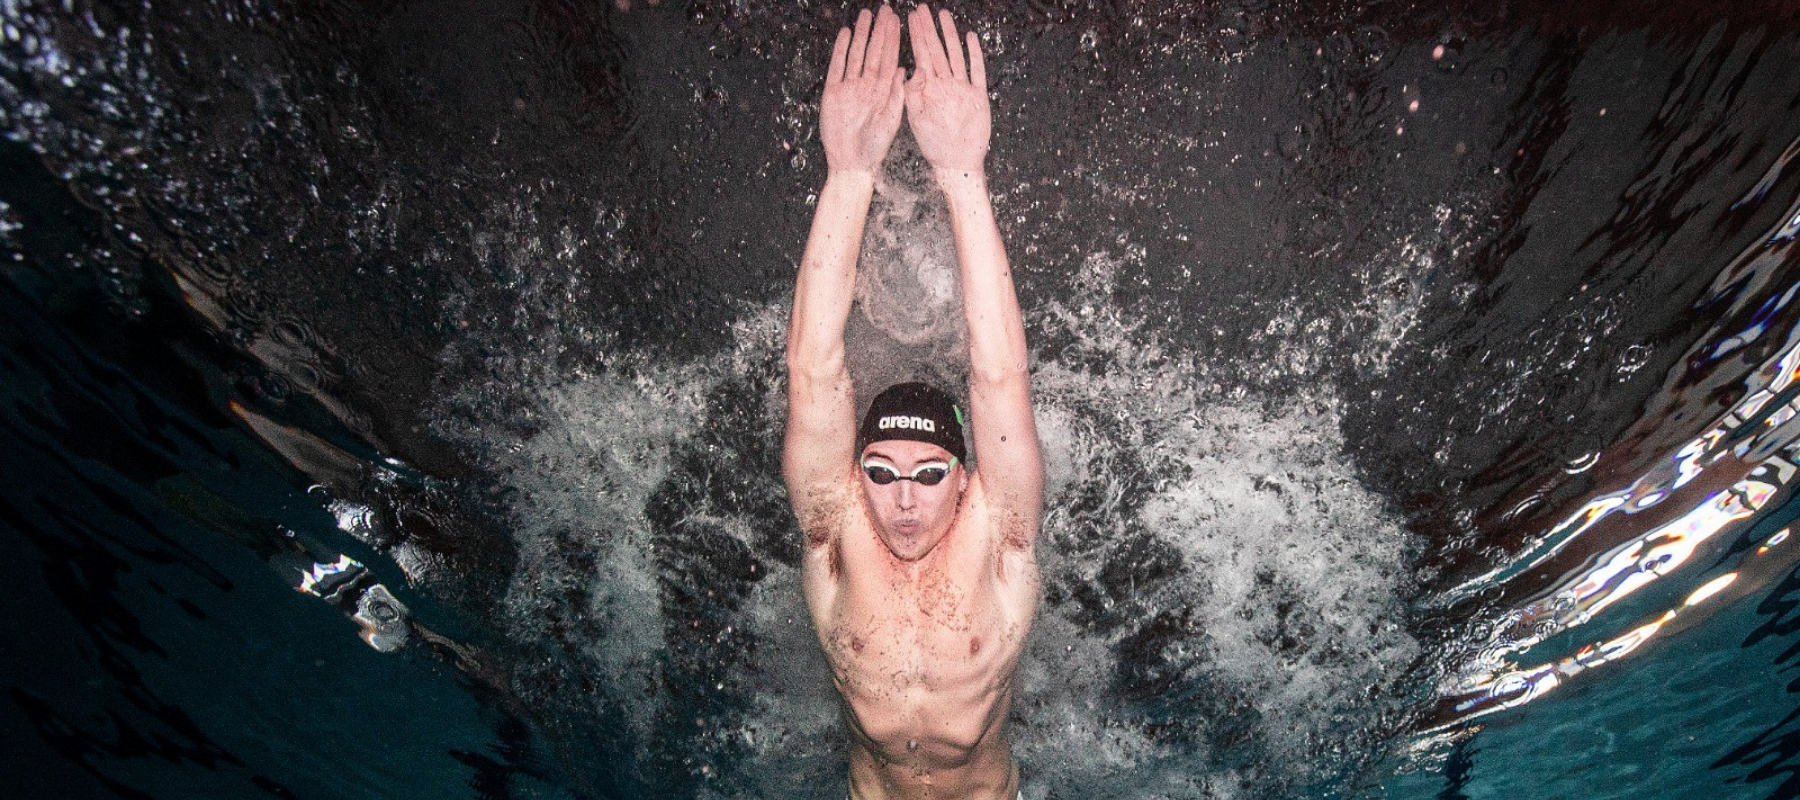 DARRAGH GREENE: Swimming